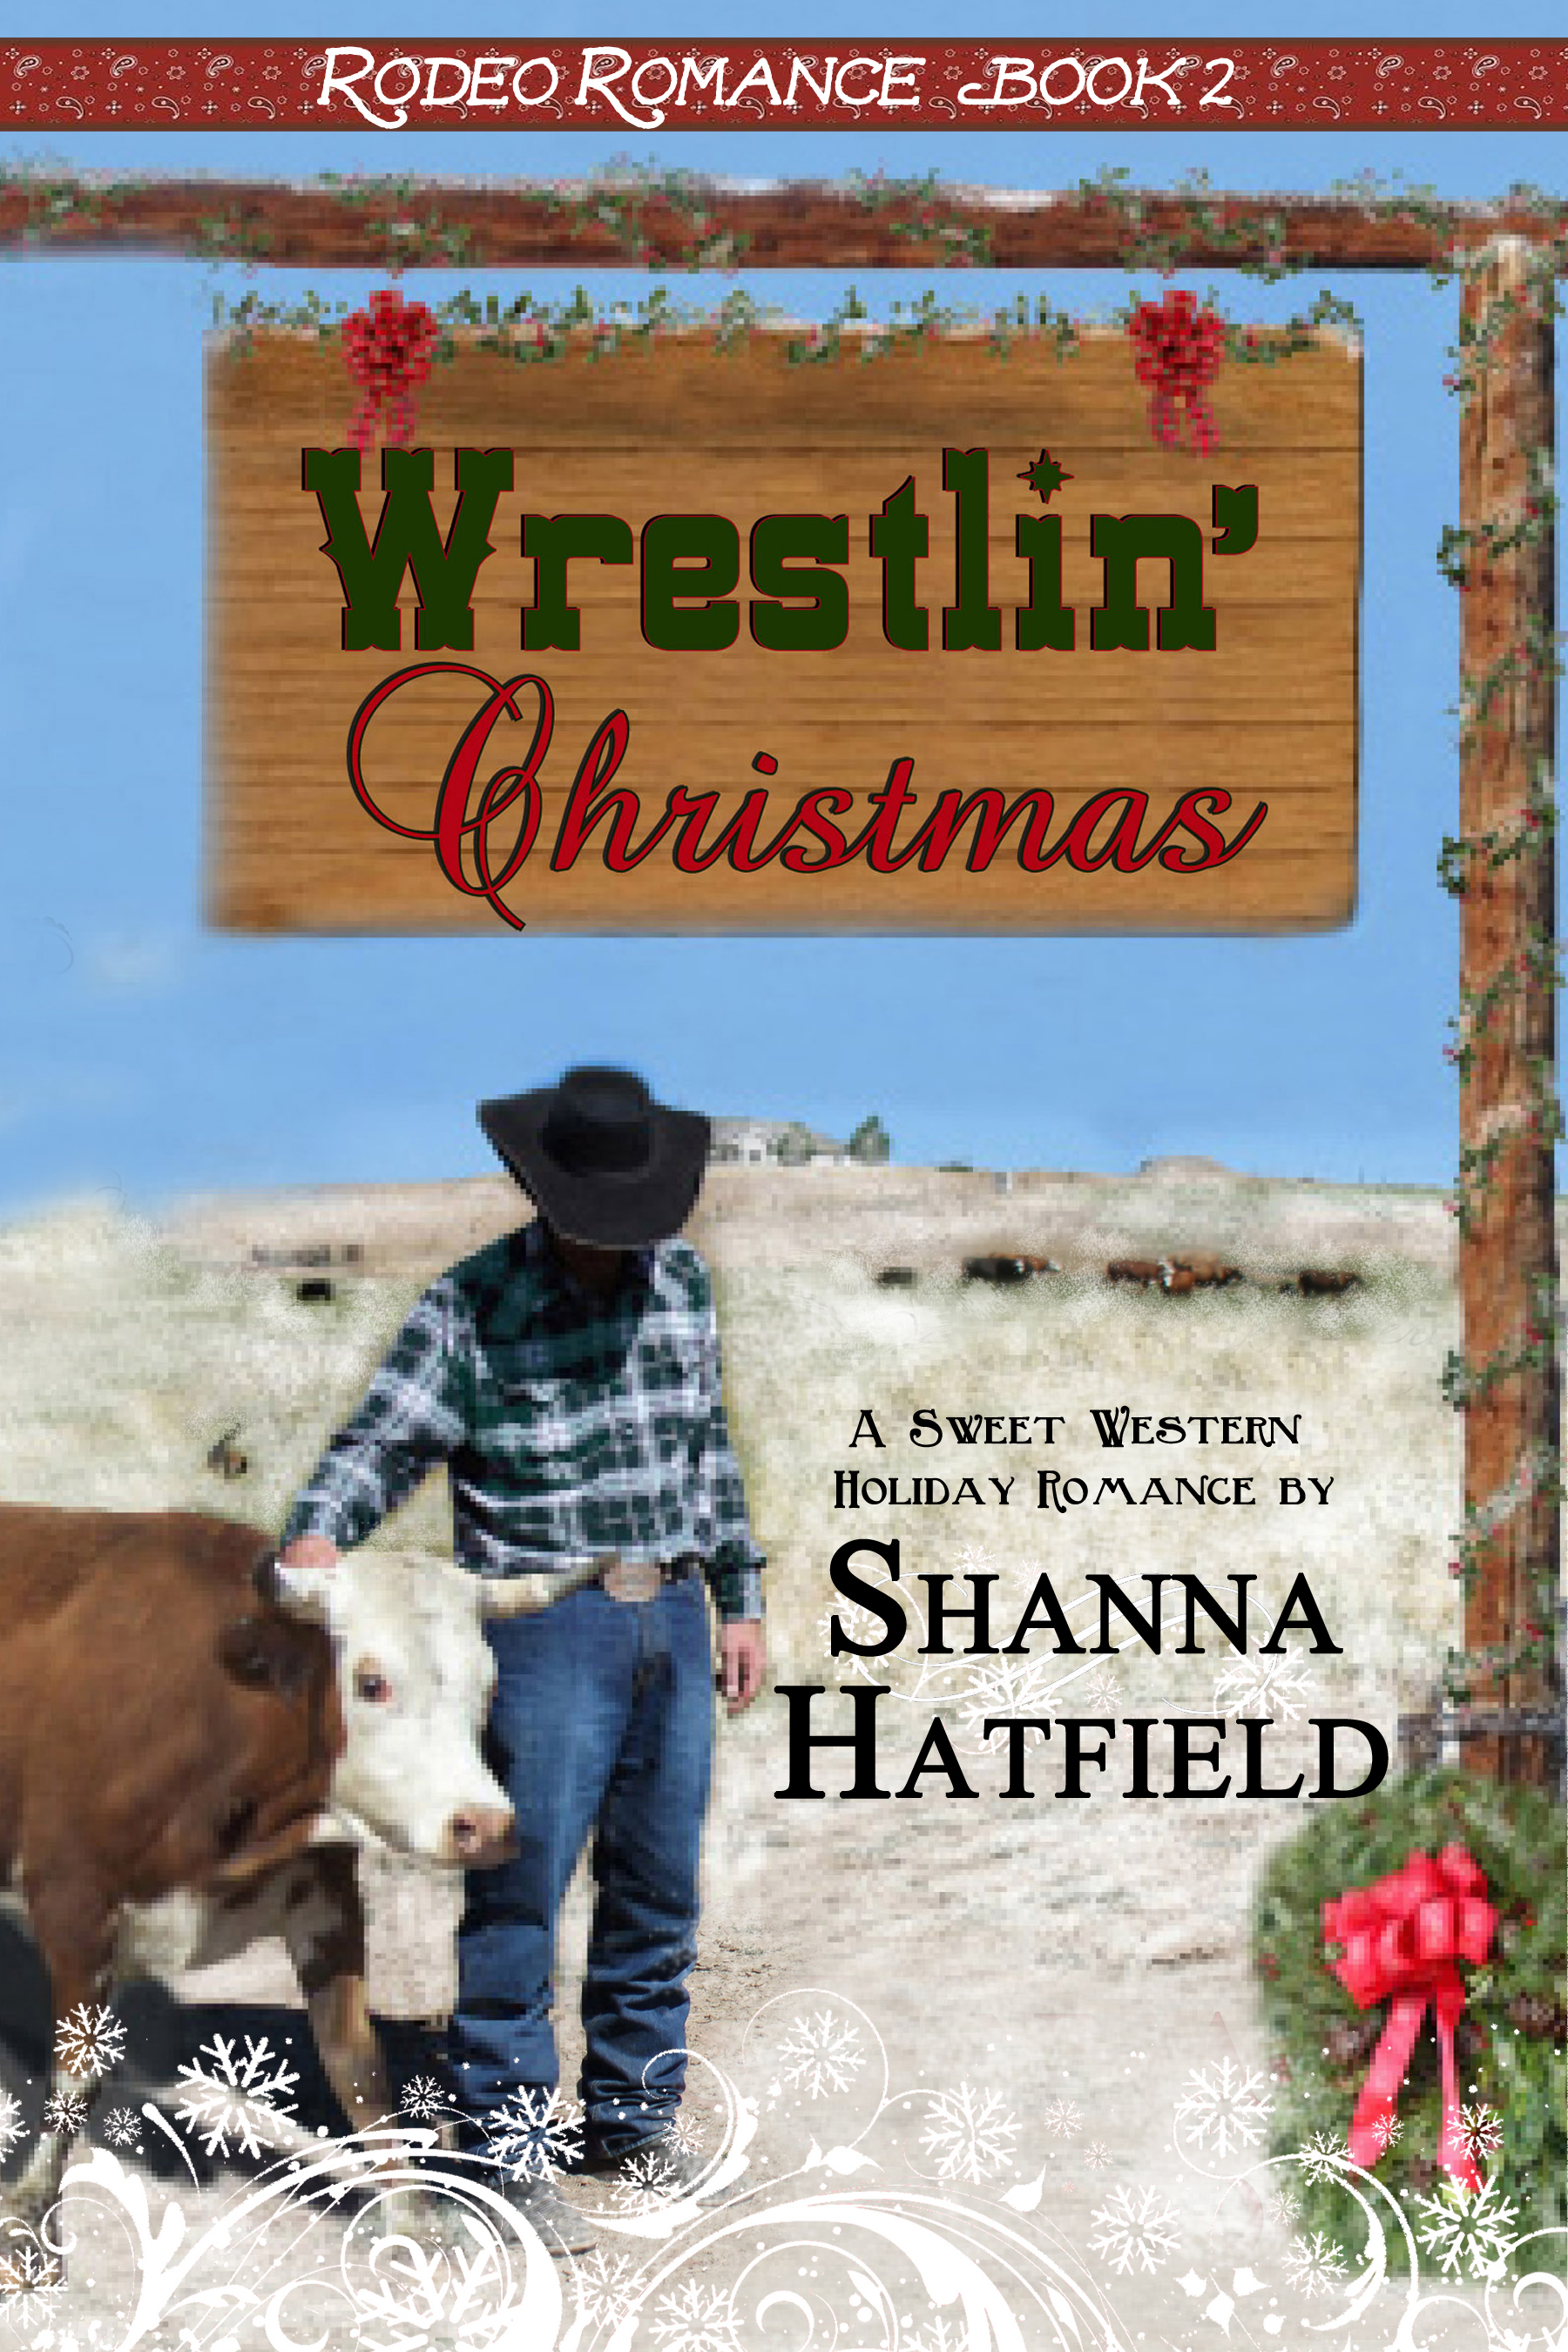 Christmas Romance Book Covers ~ Rodeo romance series shanna hatfield